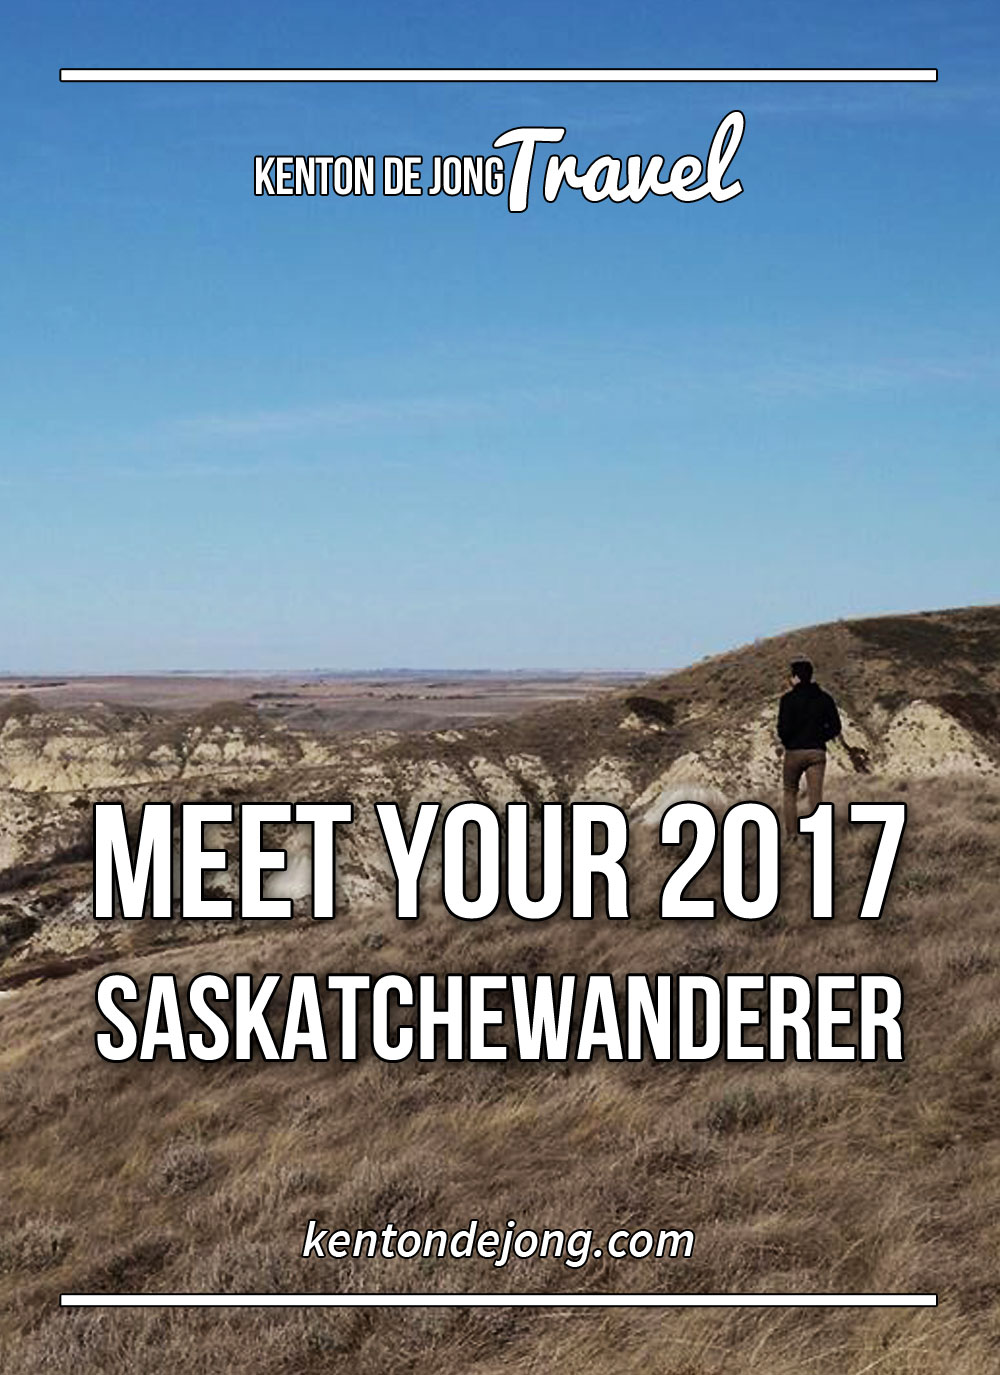 Meet Your 2017 Saskatchewanderer